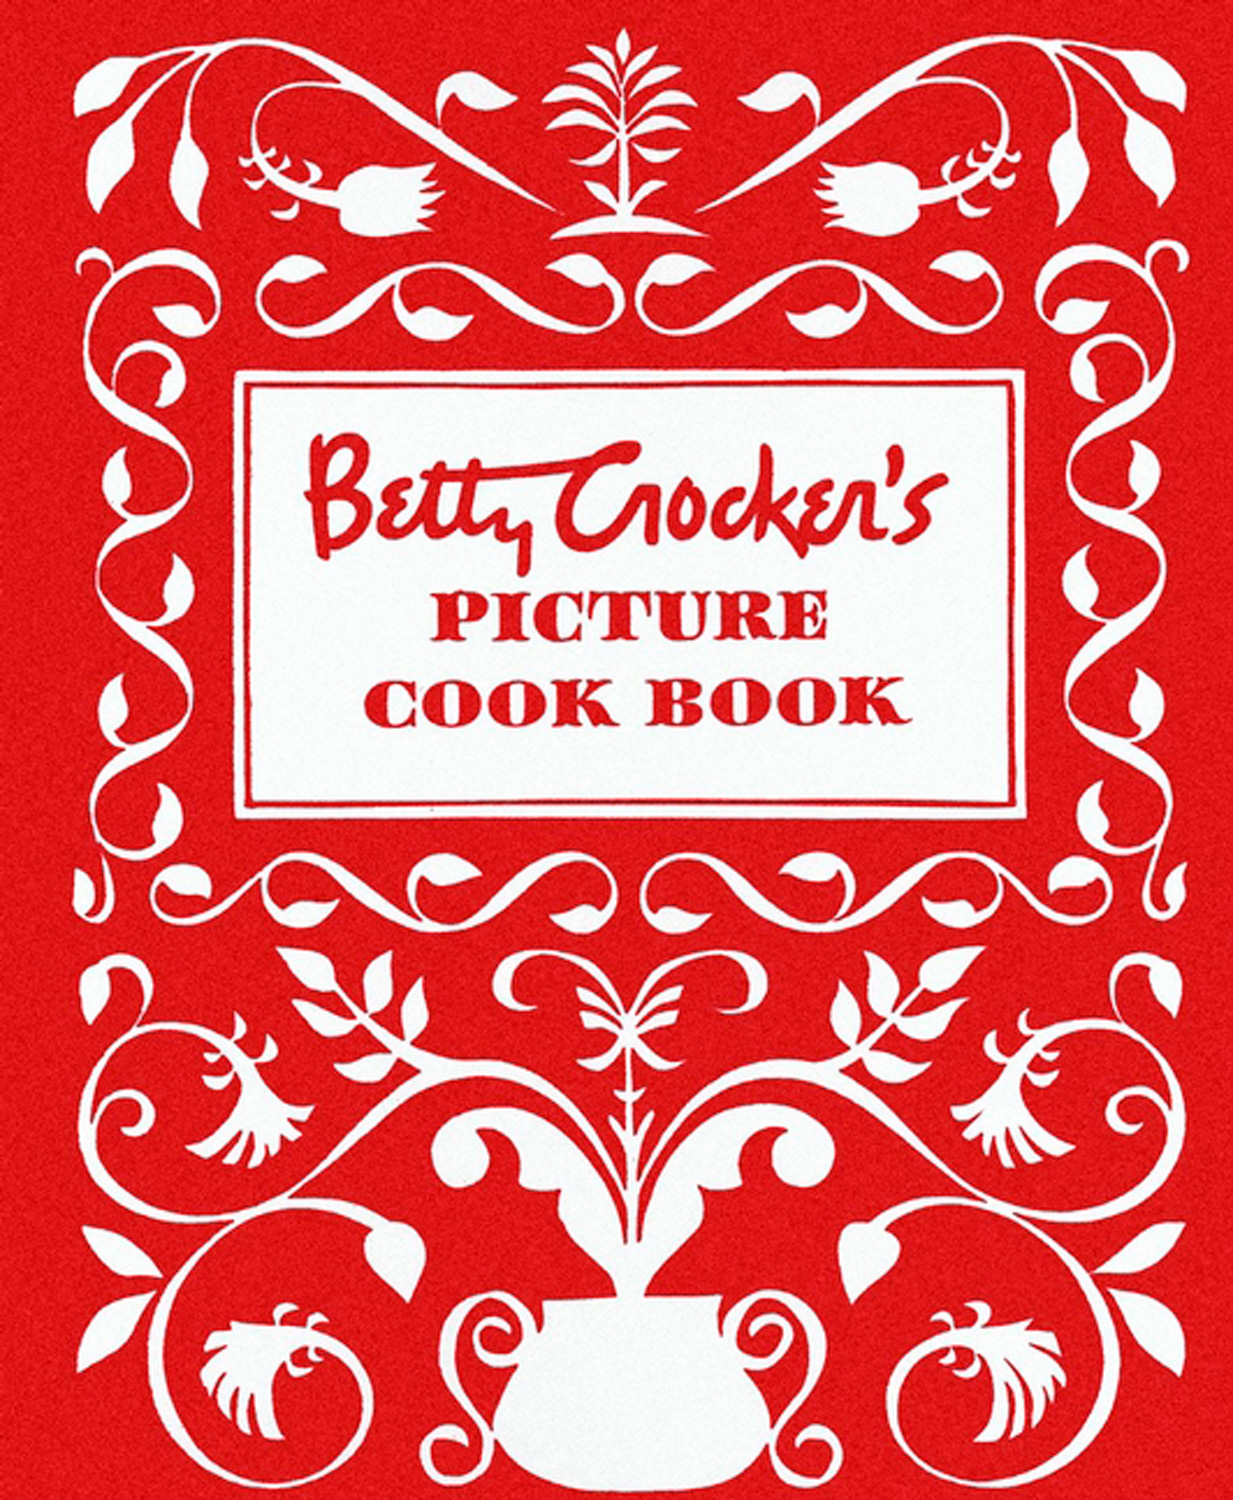 Betty Crocker's Picture Cookbook, Facsimile Edition-9780028627717